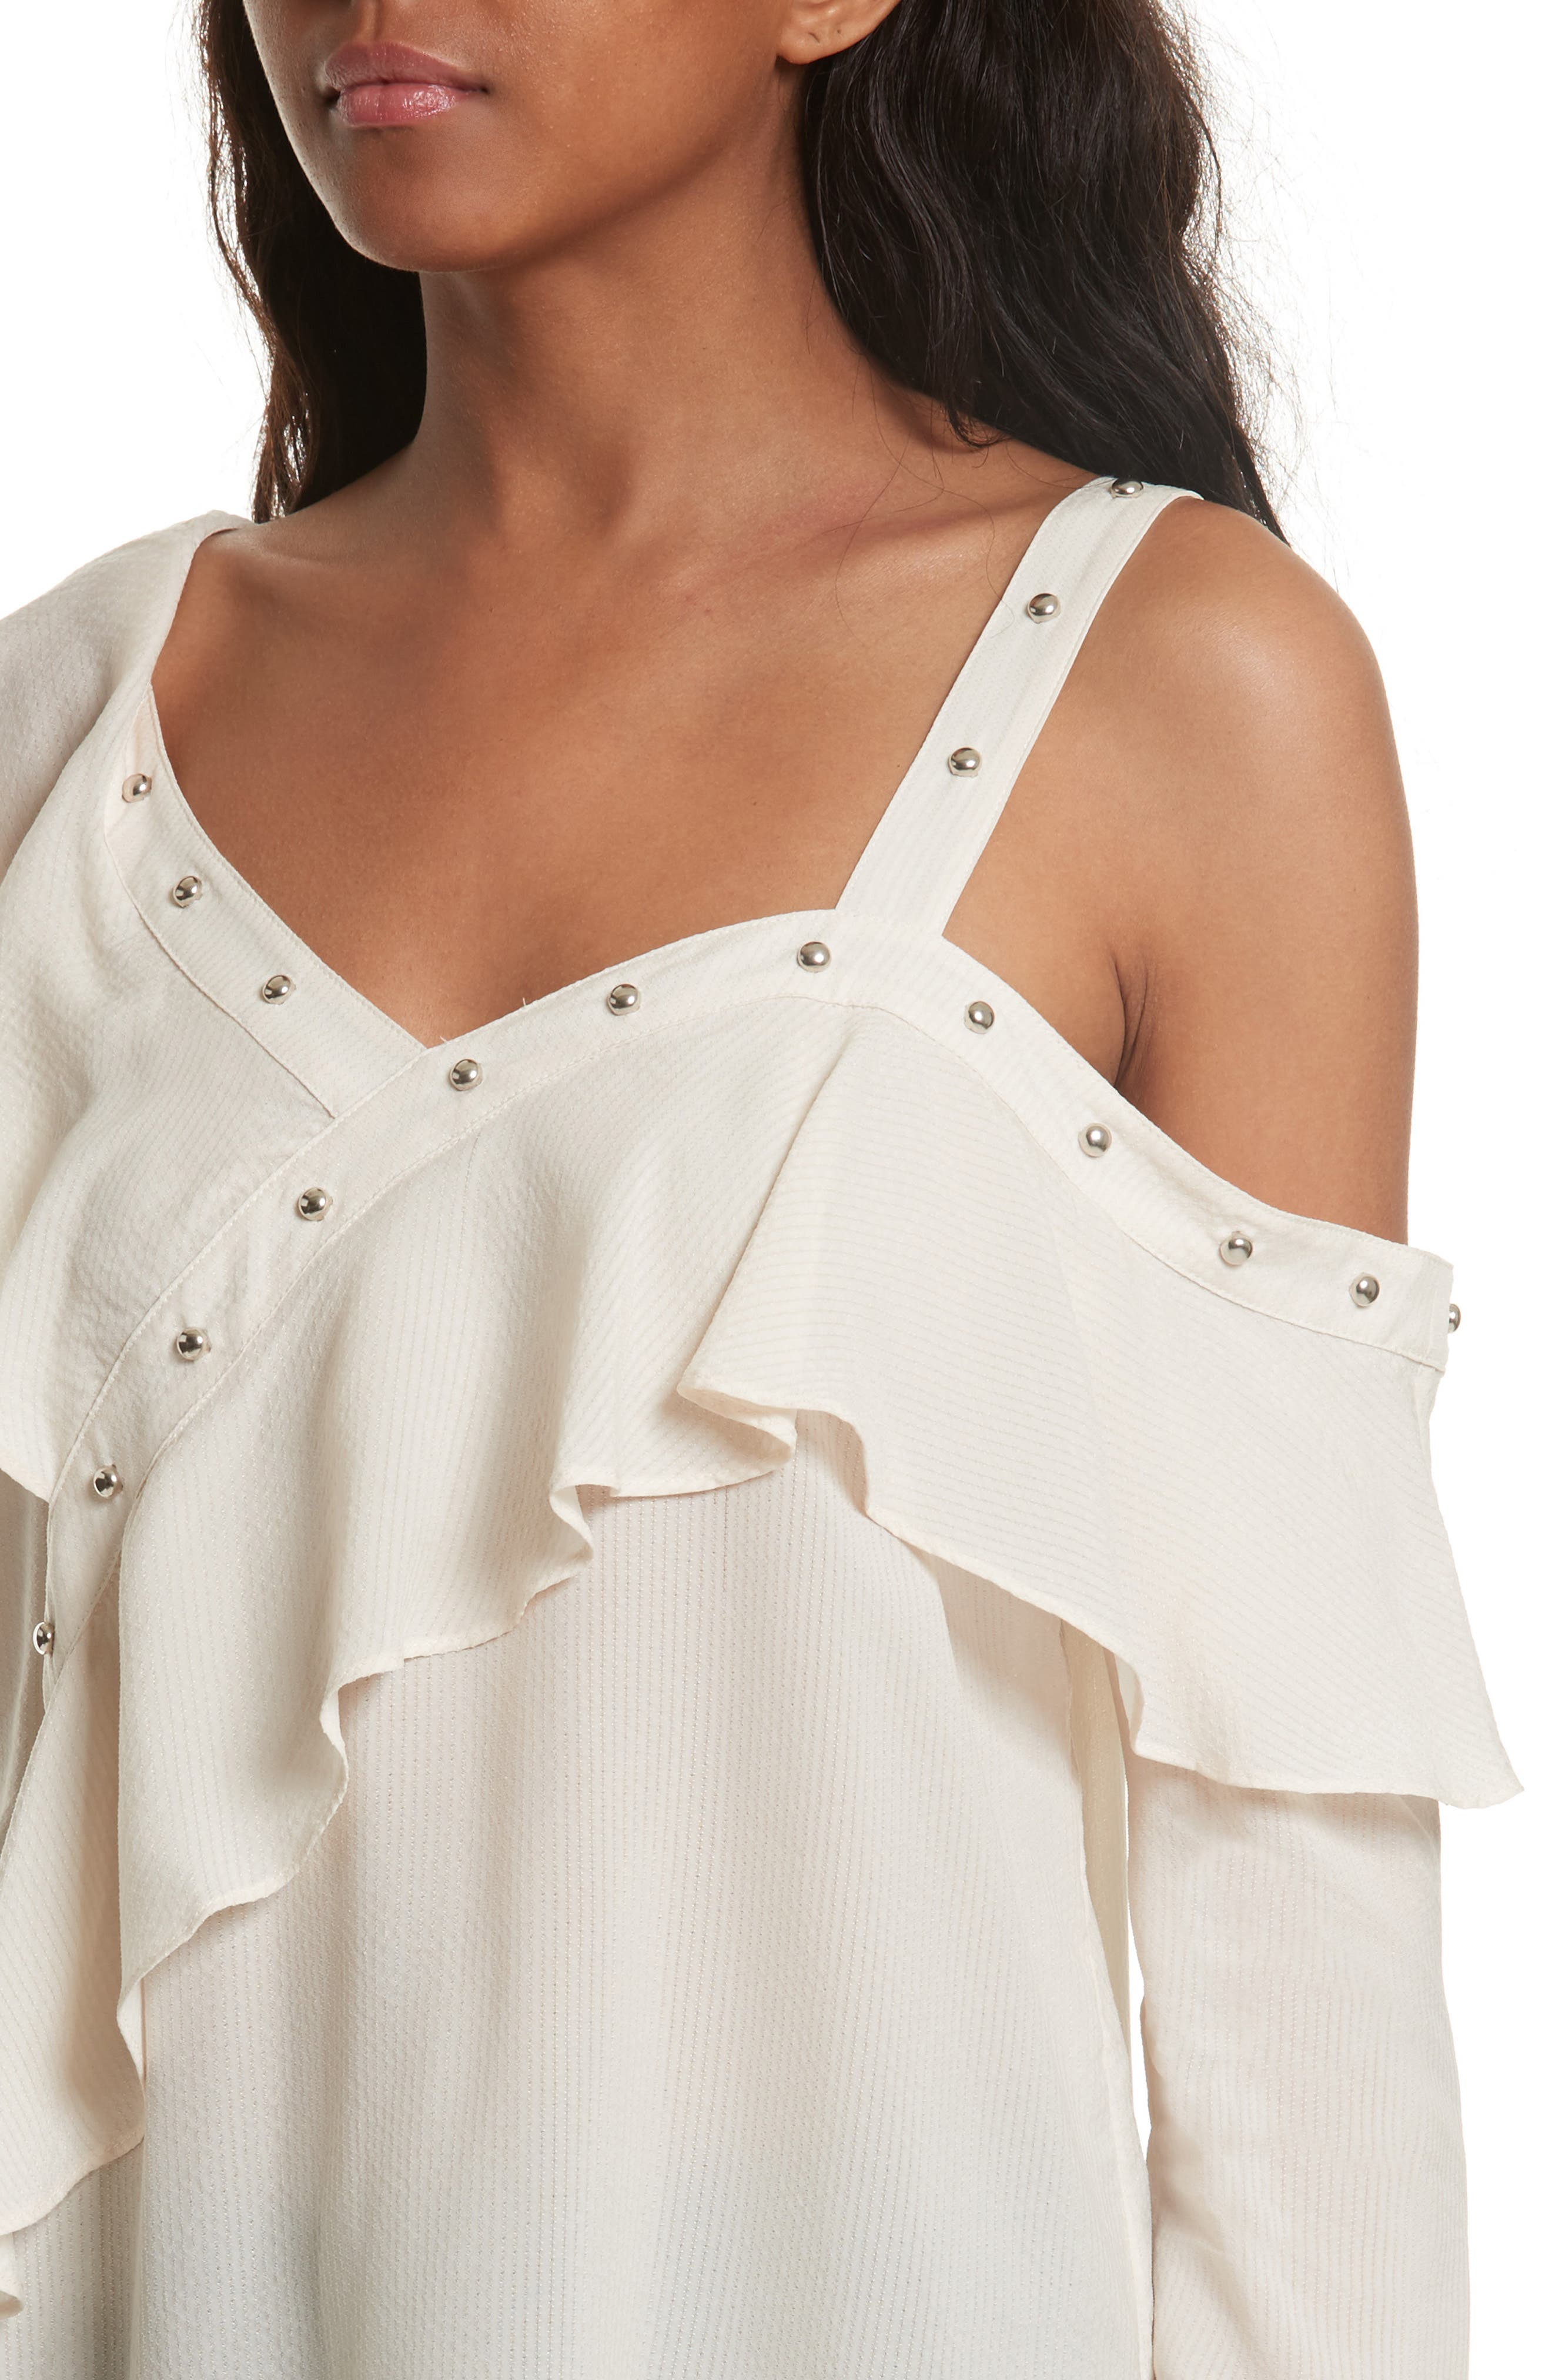 Clementine Off the Shoulder Top,                             Alternate thumbnail 4, color,                             100